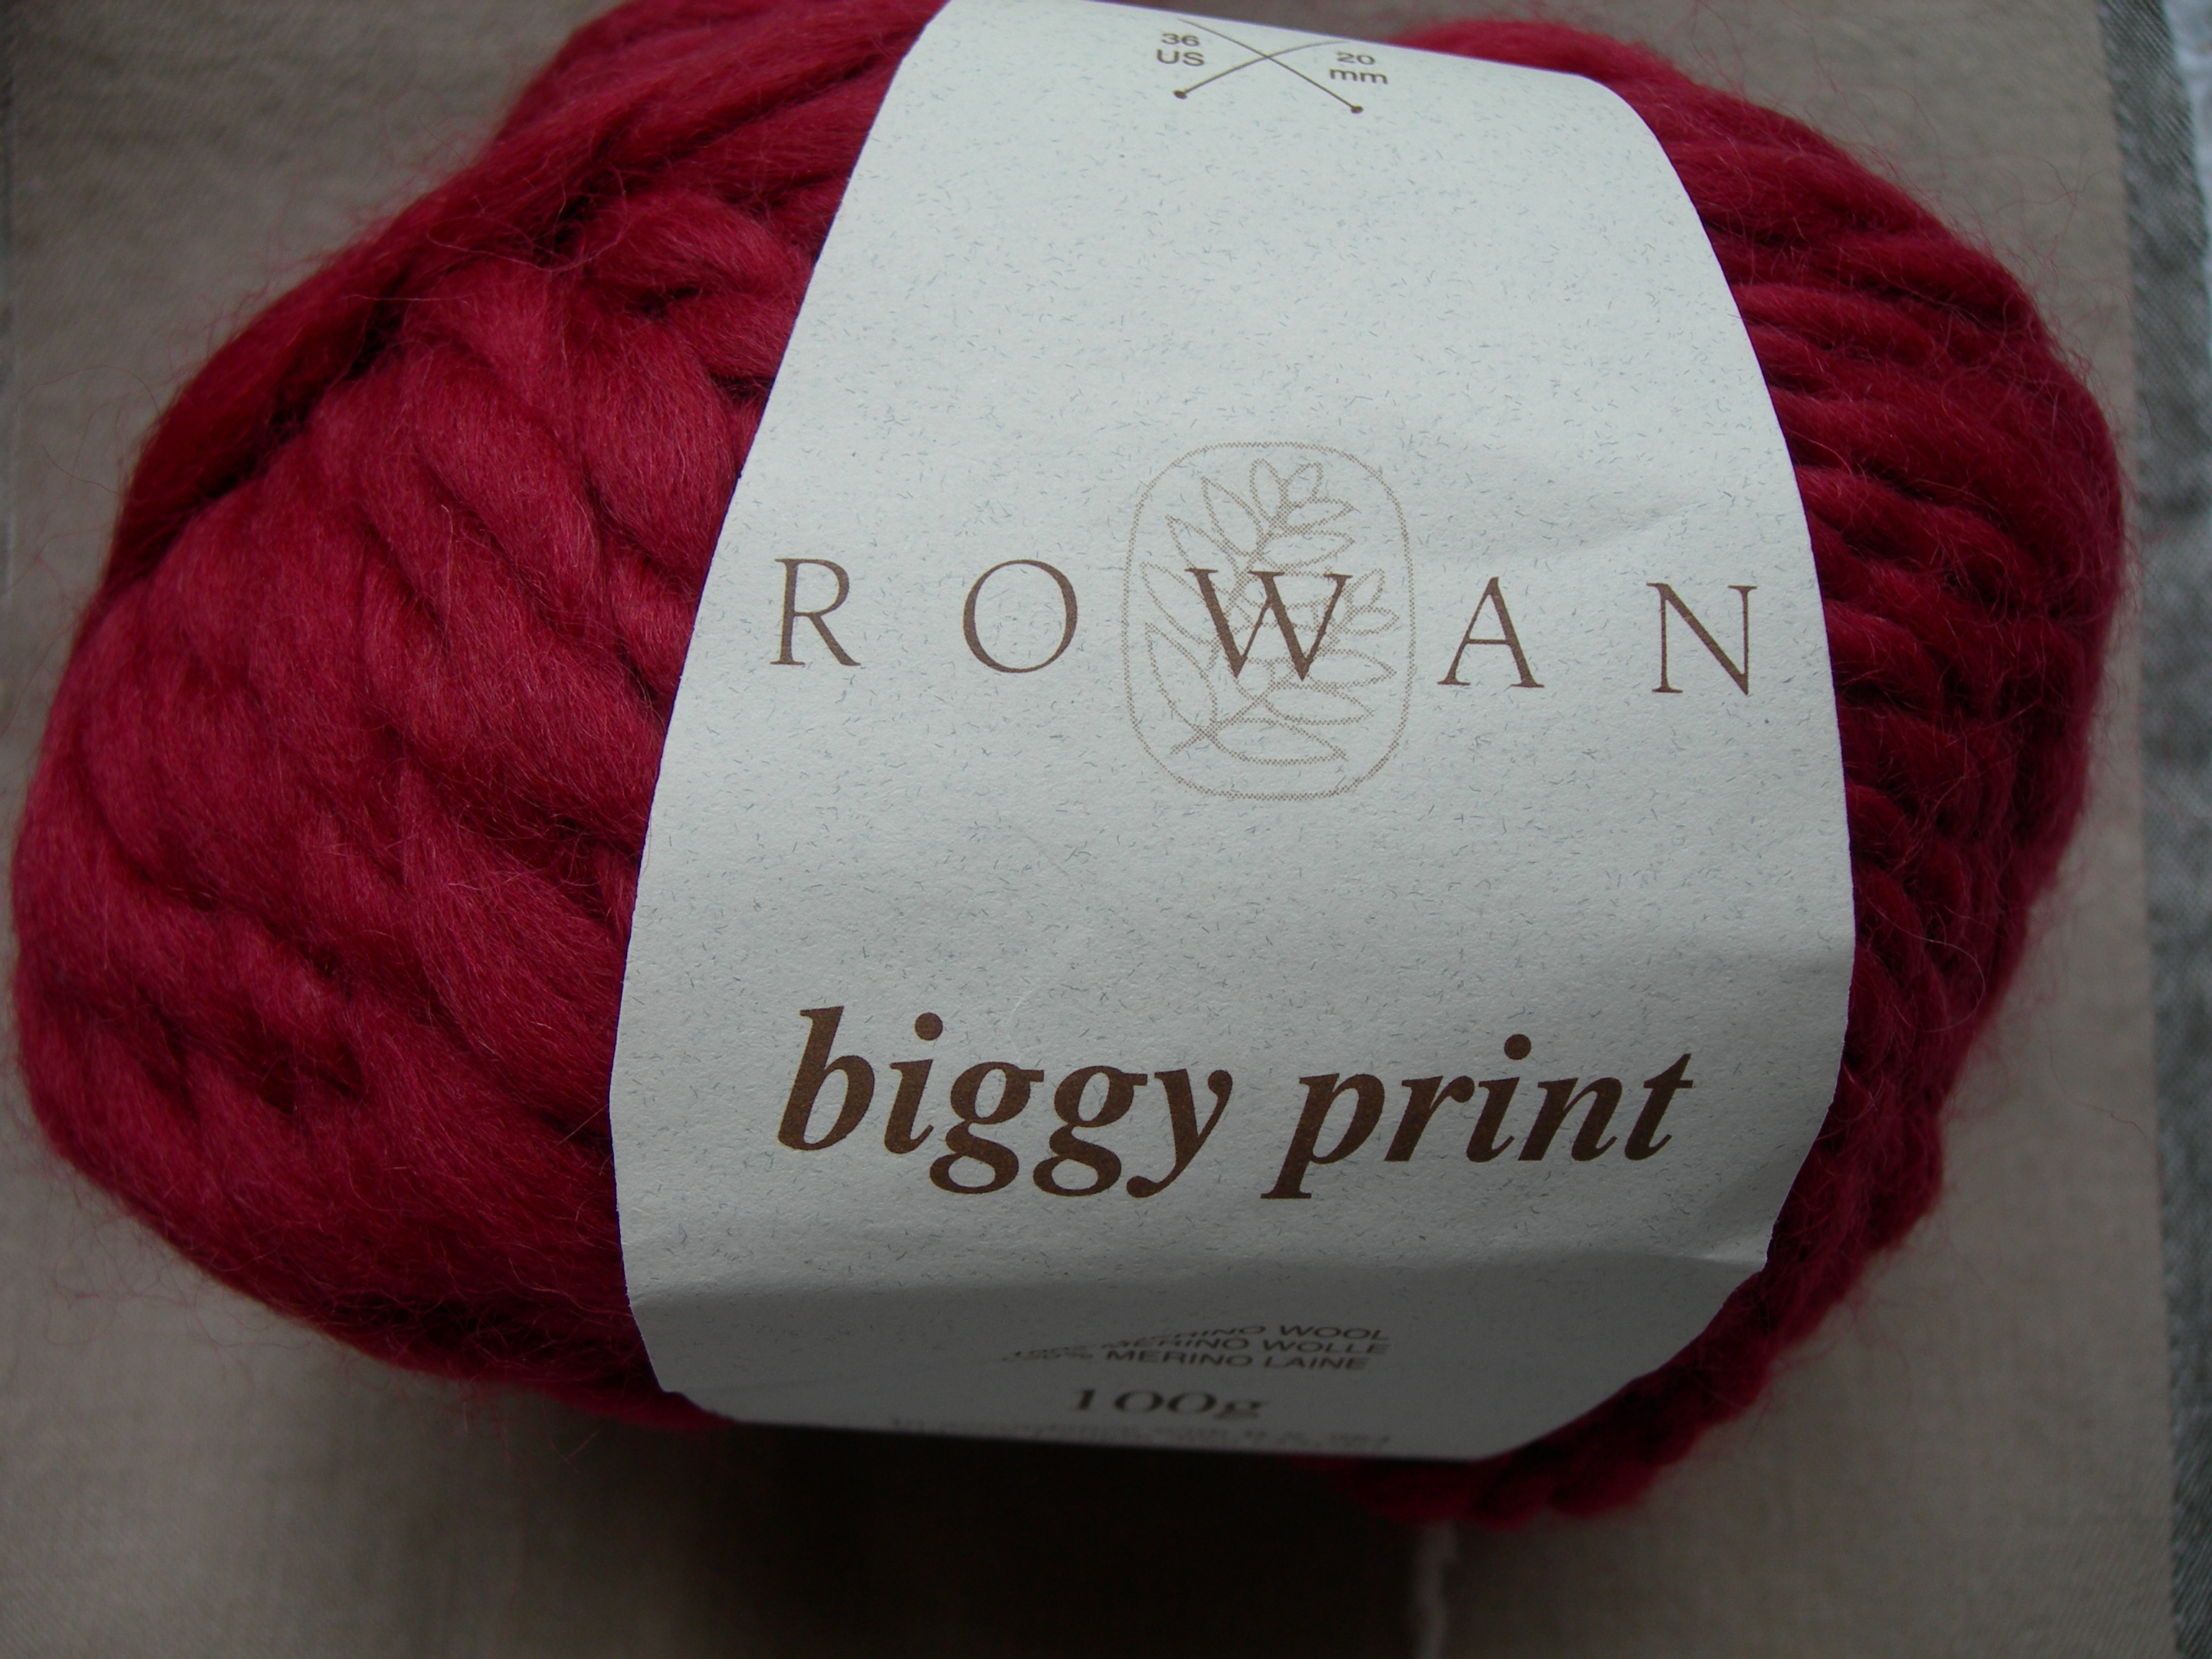 Rowan BiggyPrint.jpg